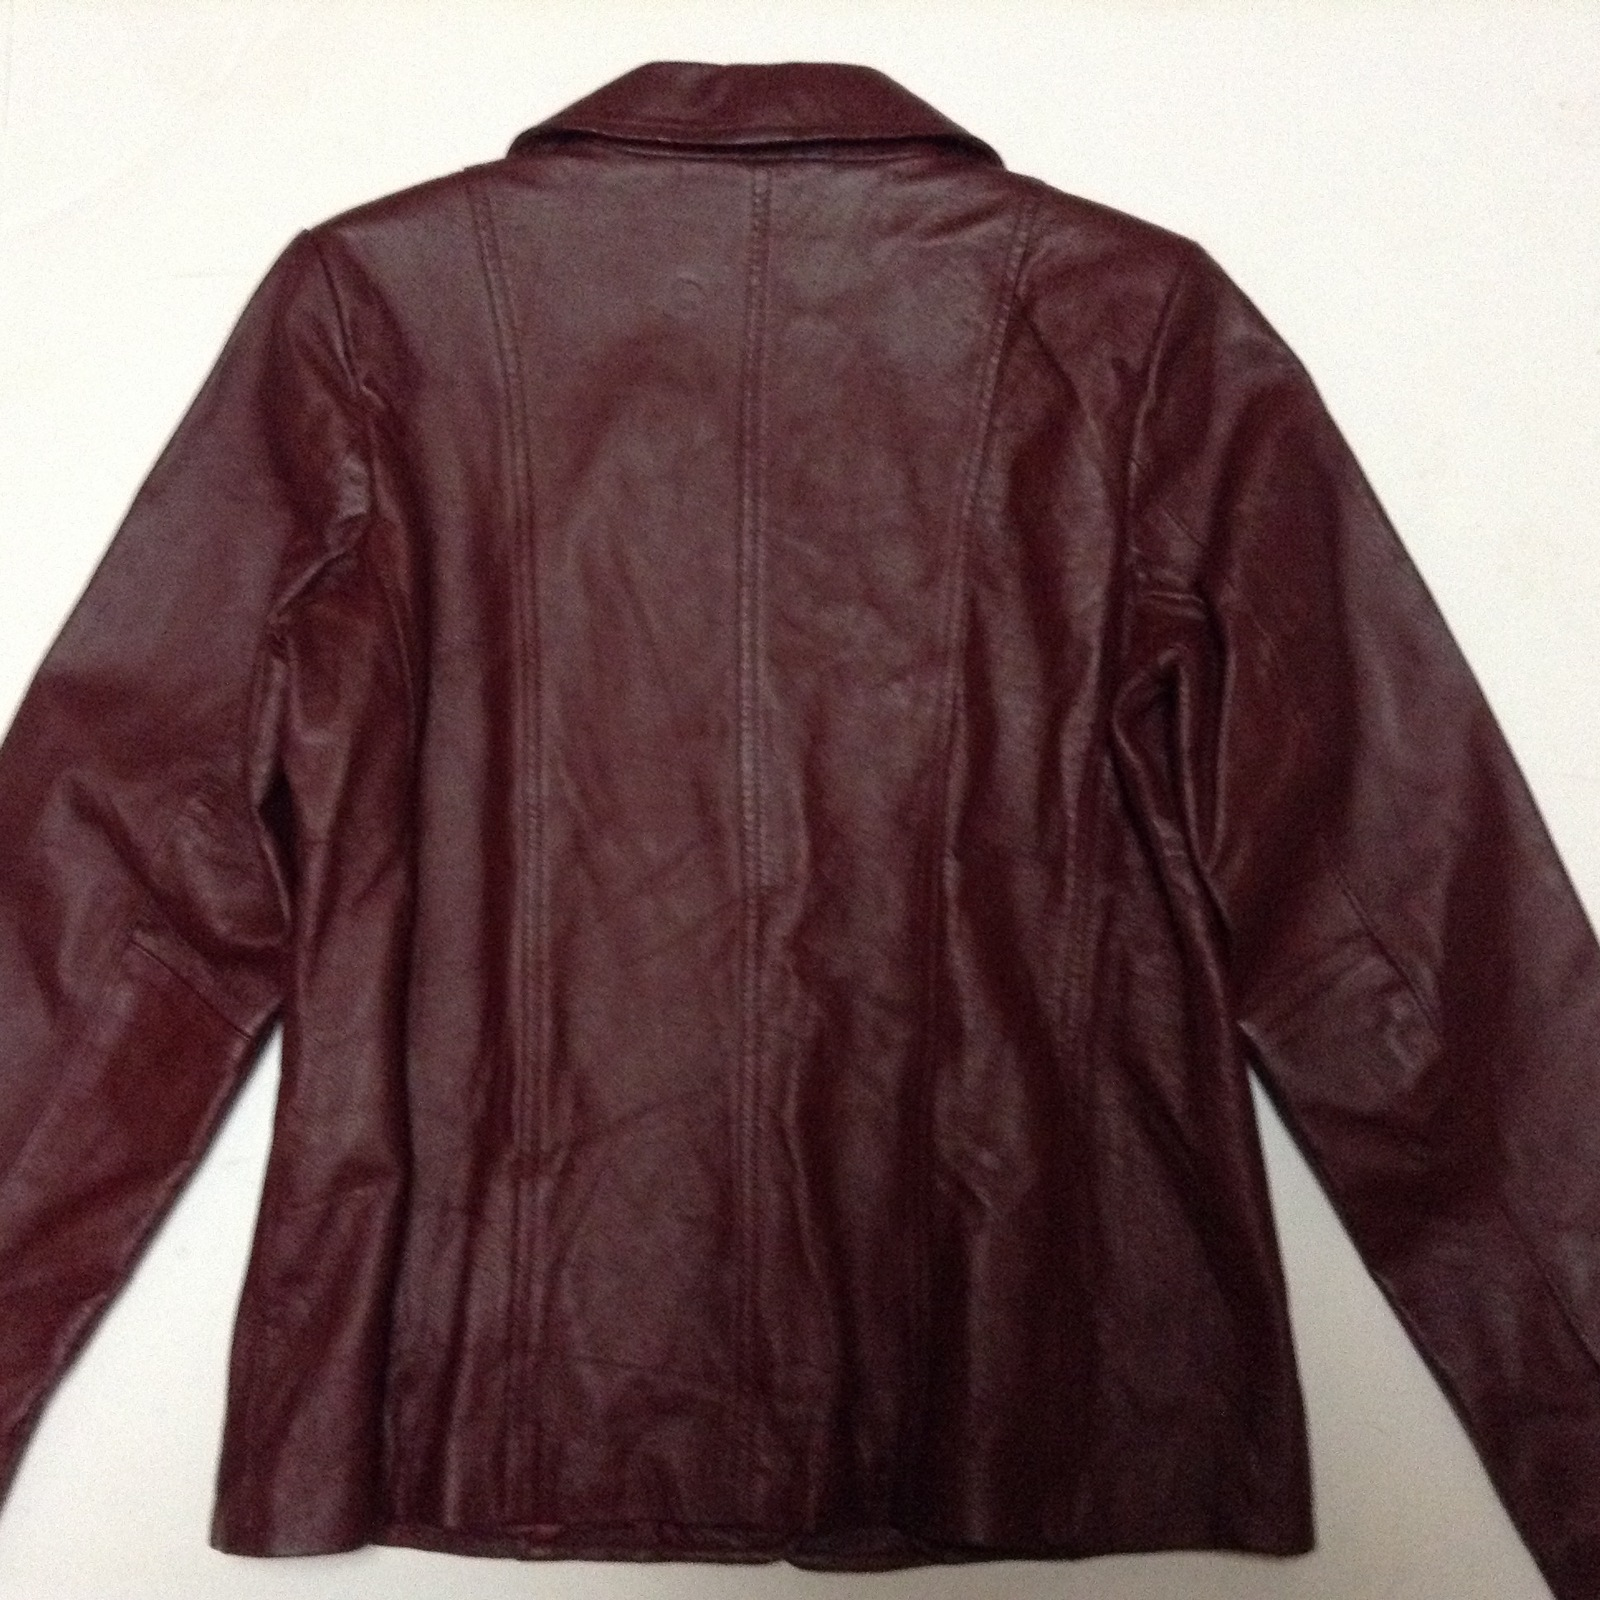 Dialogue 100% Leather Jacket NWT Size S Maroon Red